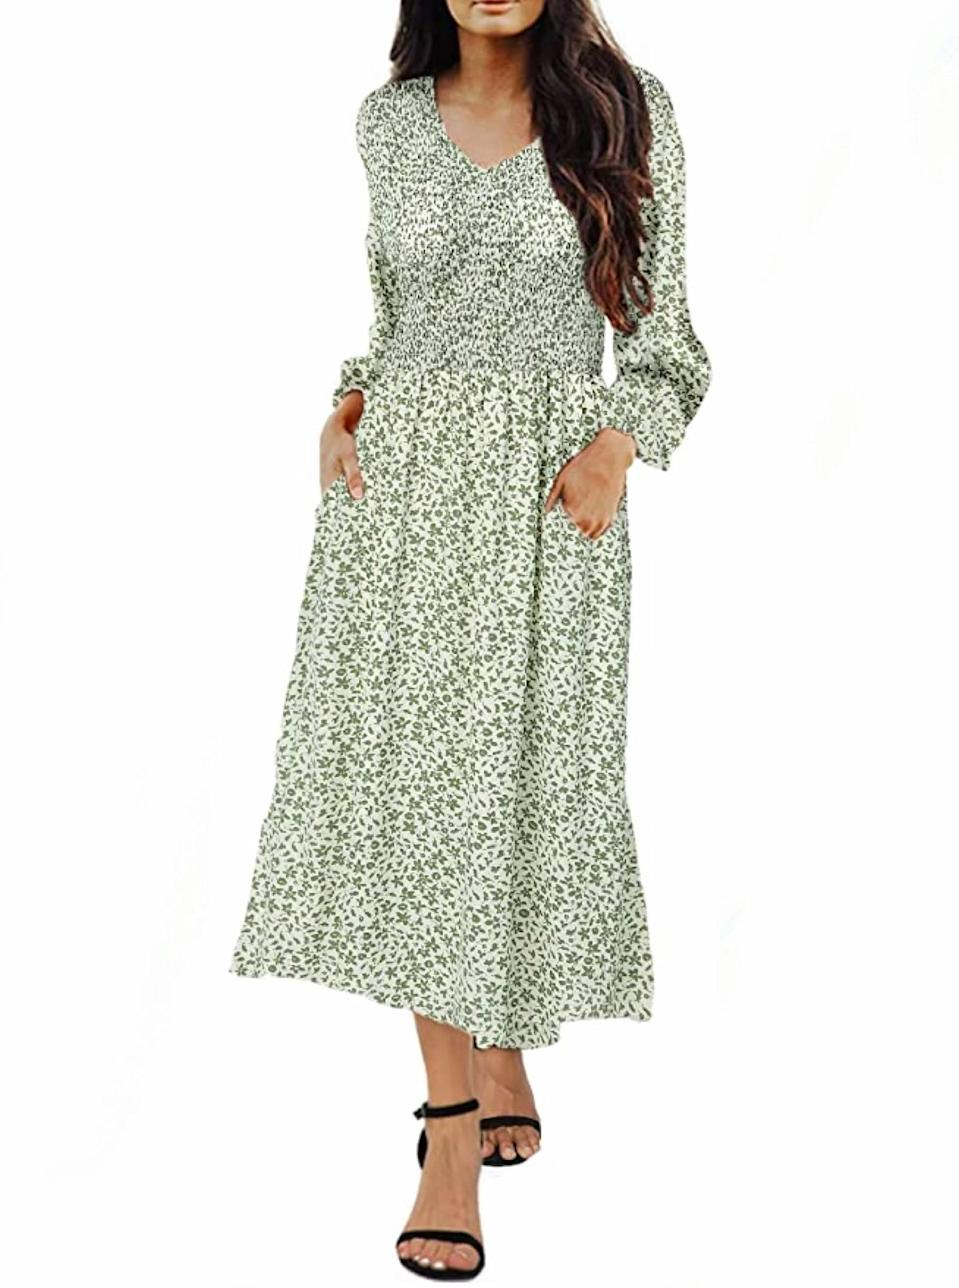 """Always here for a sage green moment. $30, Amazon. <a href=""""https://www.amazon.com/Kranda-Sleeve-Smocked-Pleated-Leopard/dp/B08HYKNTHW/"""" rel=""""nofollow noopener"""" target=""""_blank"""" data-ylk=""""slk:Get it now!"""" class=""""link rapid-noclick-resp"""">Get it now!</a>"""